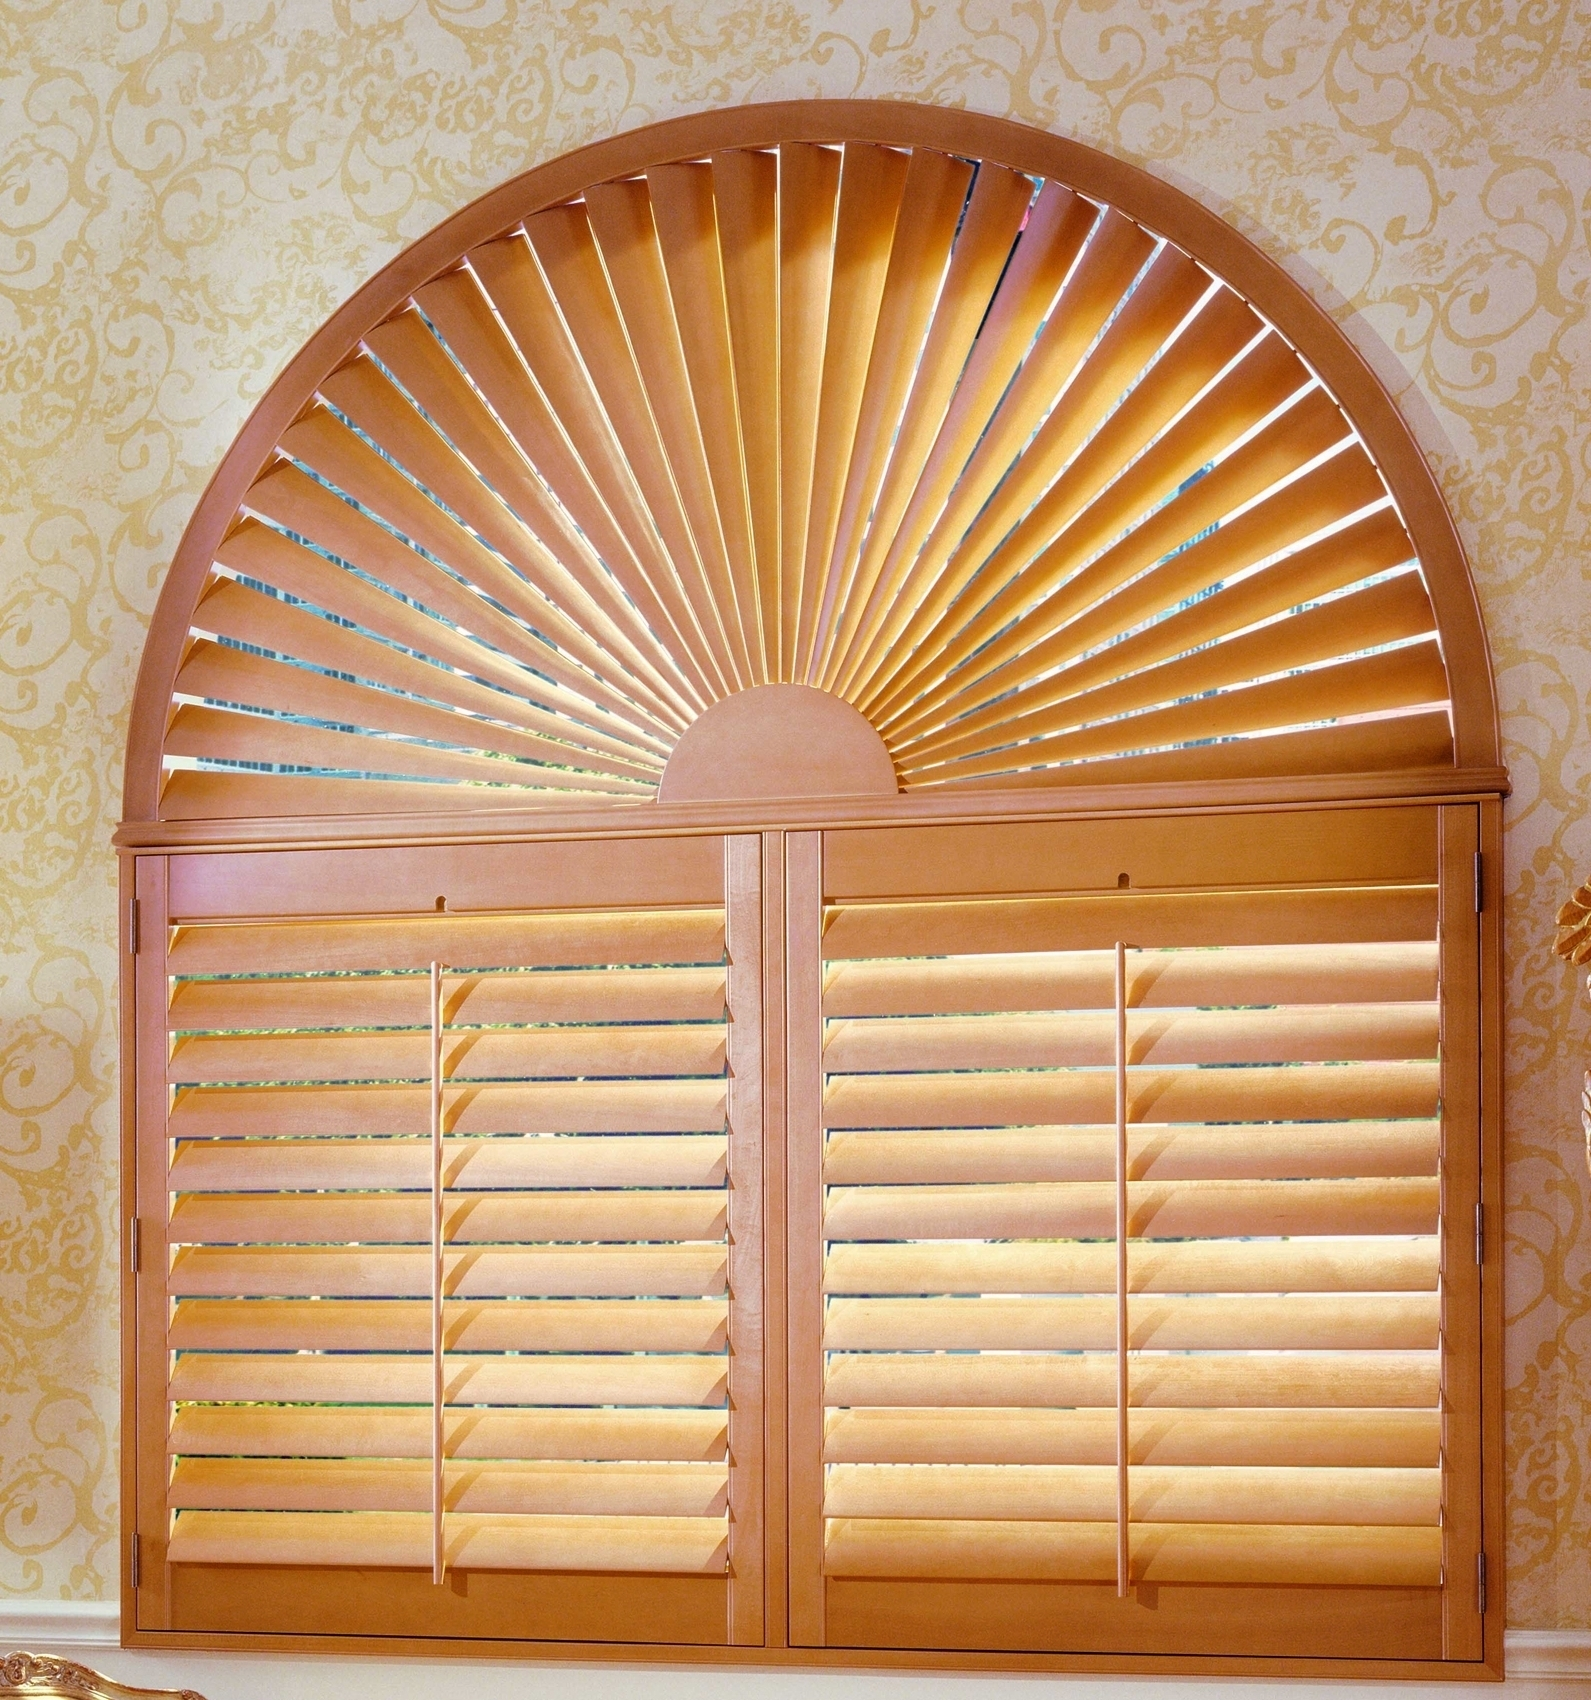 House of Blinds and Shutters